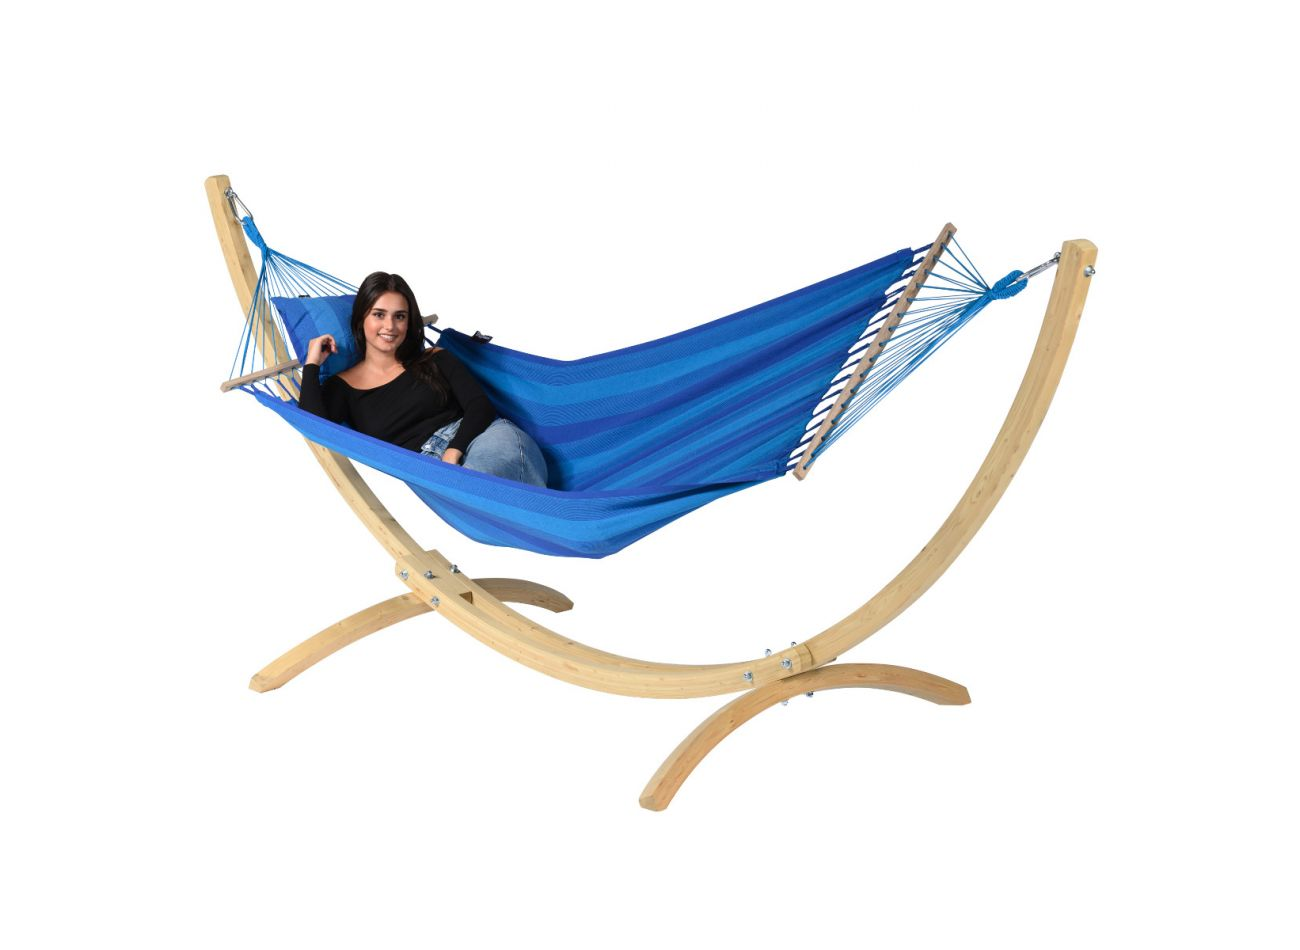 Hängematte mit Gestell 1 Person Wood & Relax Blue